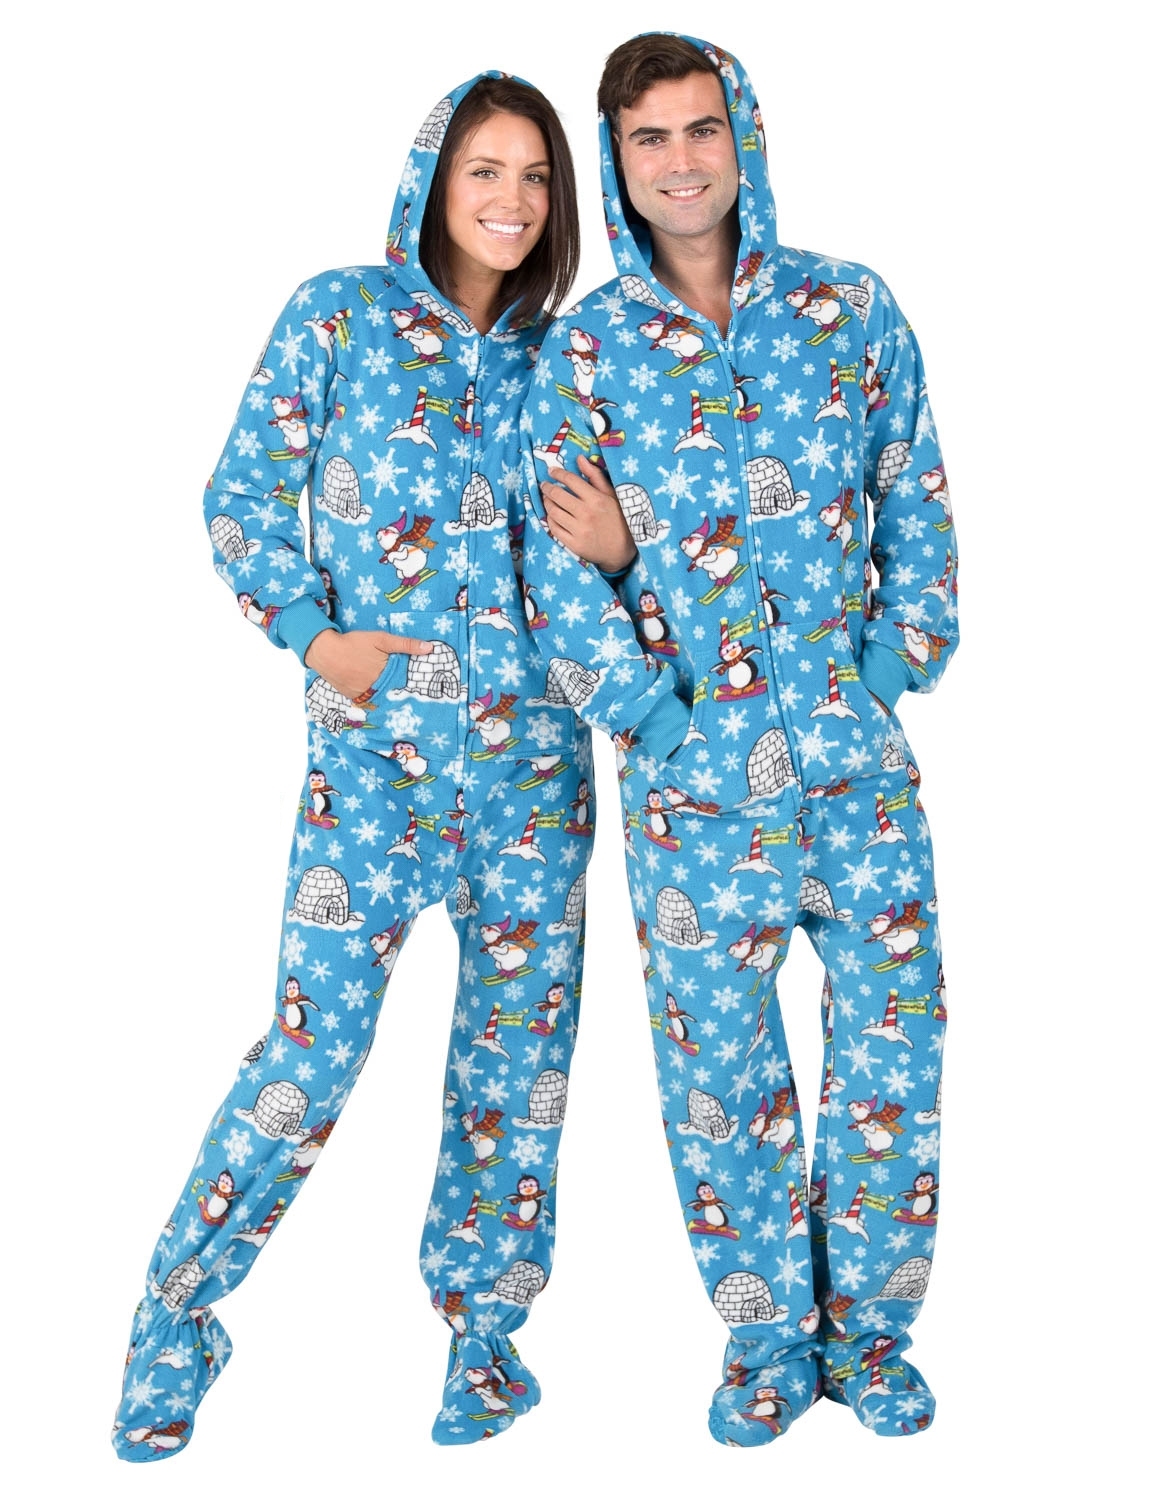 Footie pajamas: when comfy gets cozily  lazy